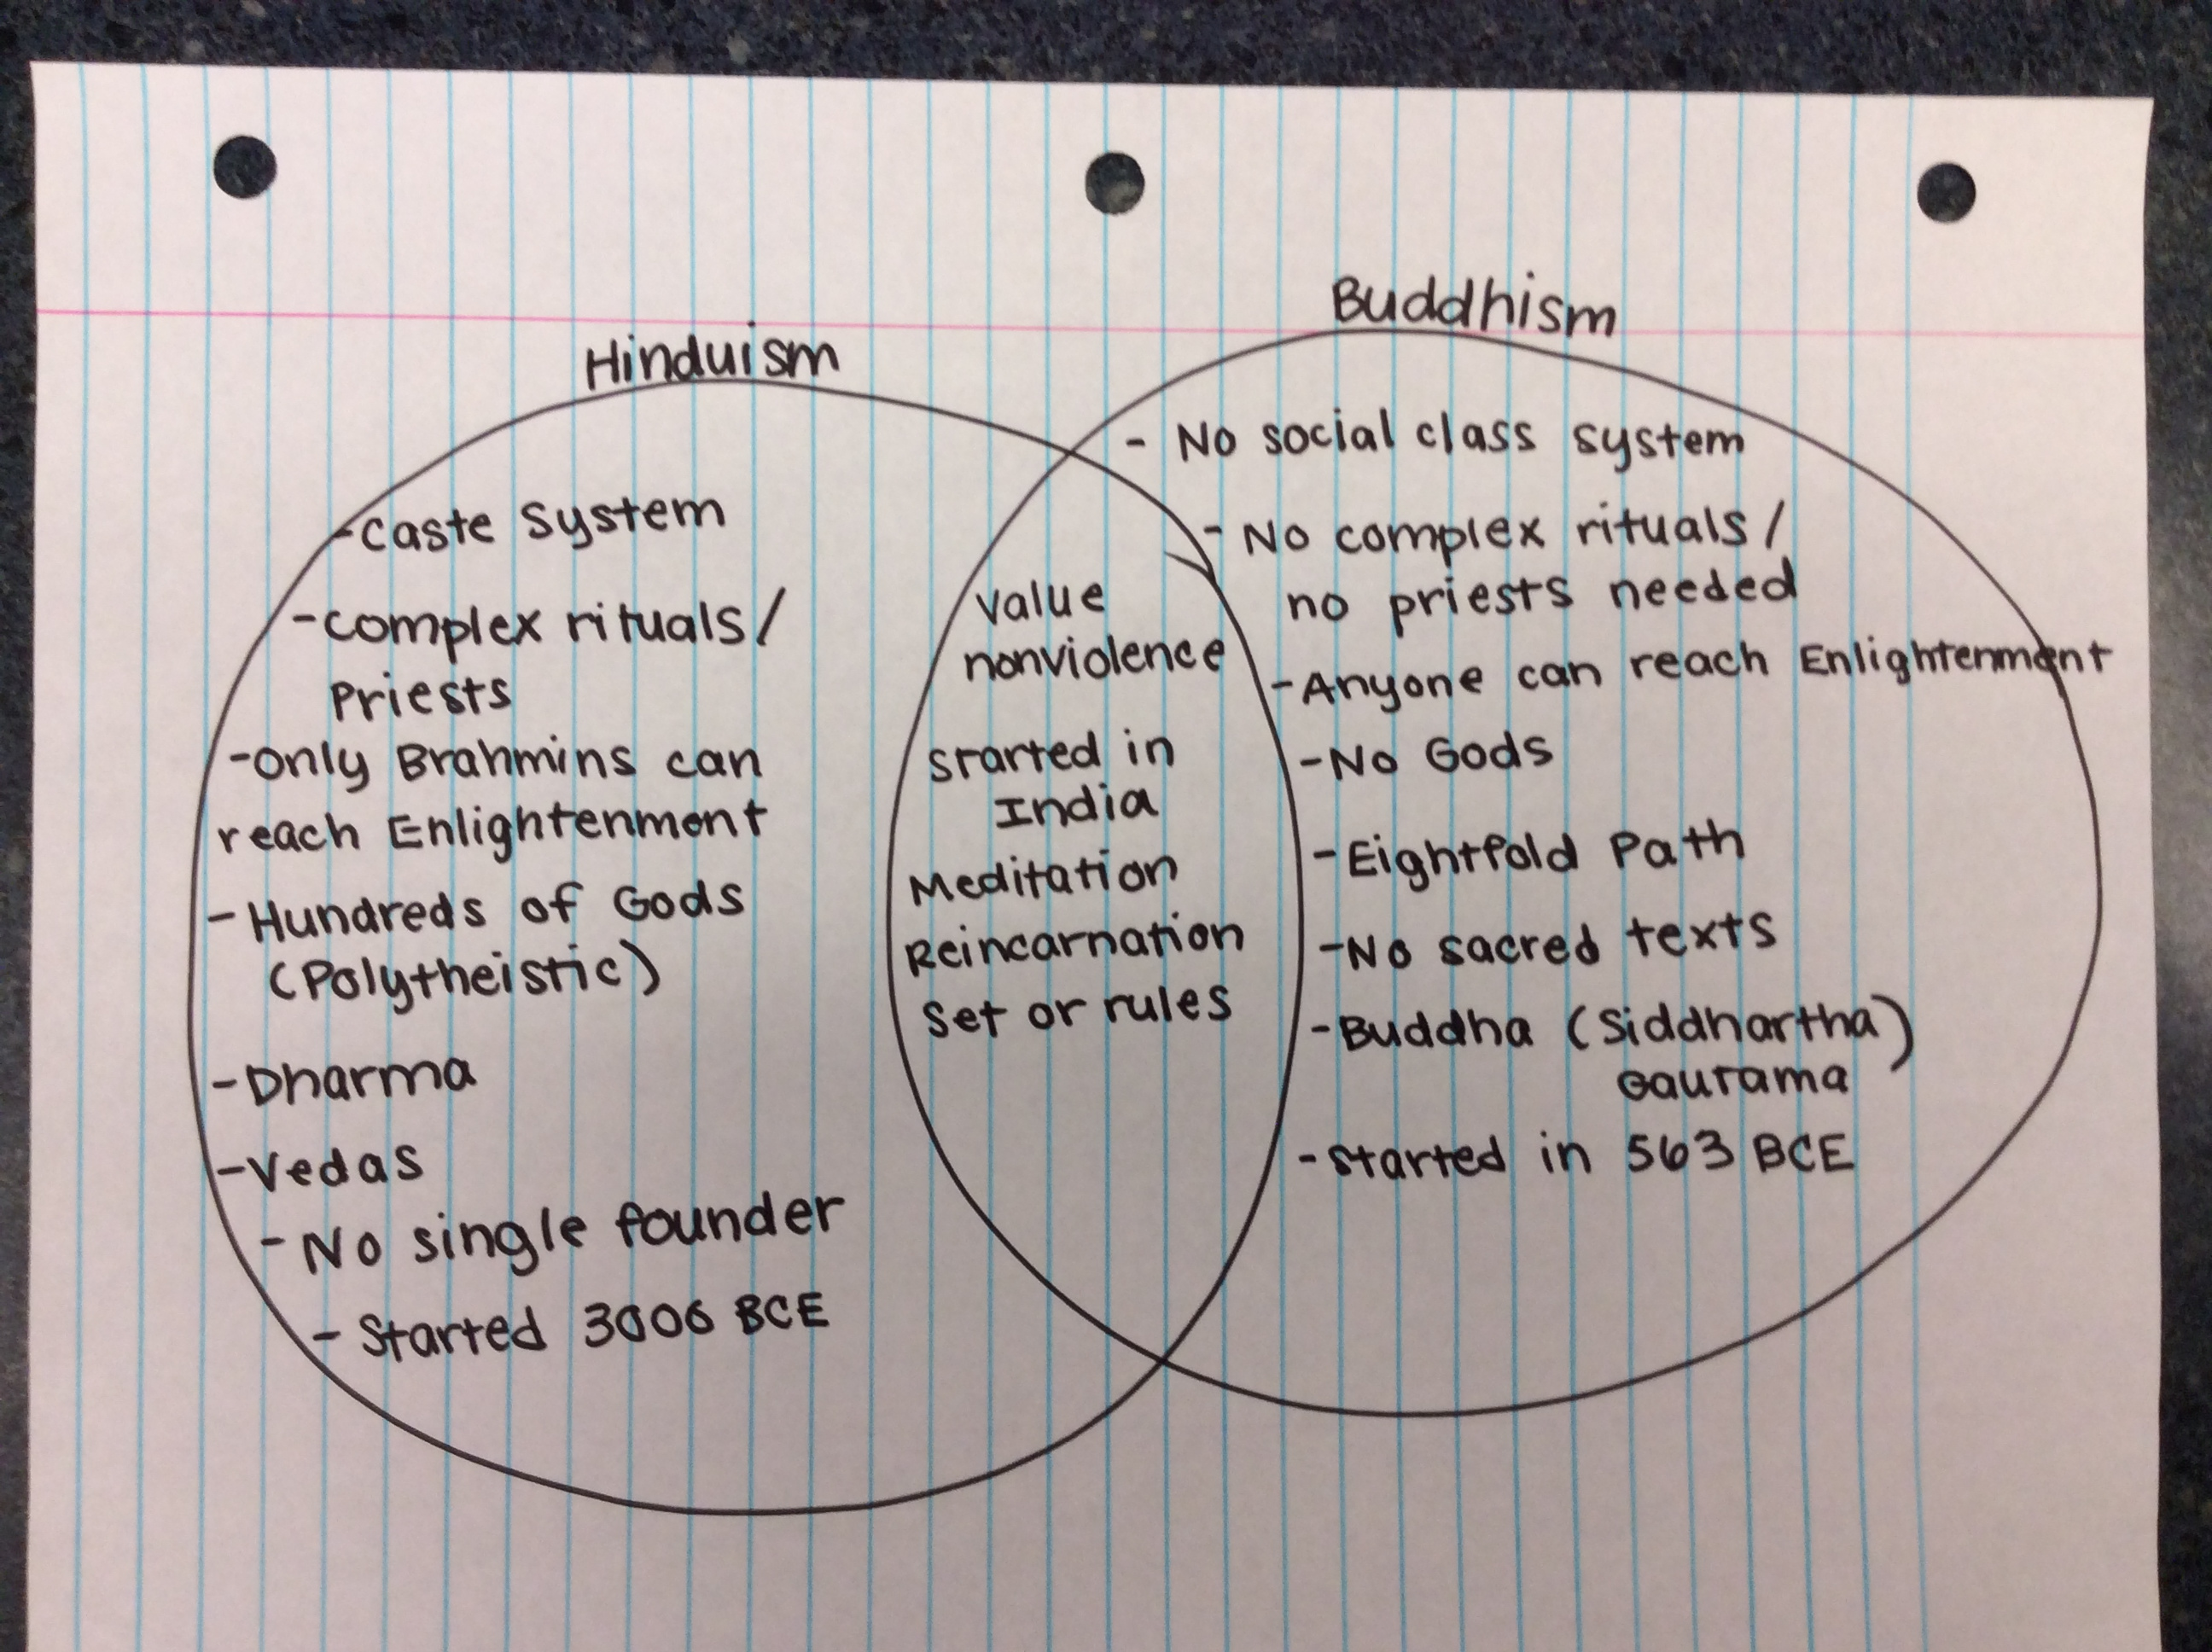 hinduism vs buddhism venn diagram mk4 jetta stereo wiring february 2014 ms stone 39s class page 2